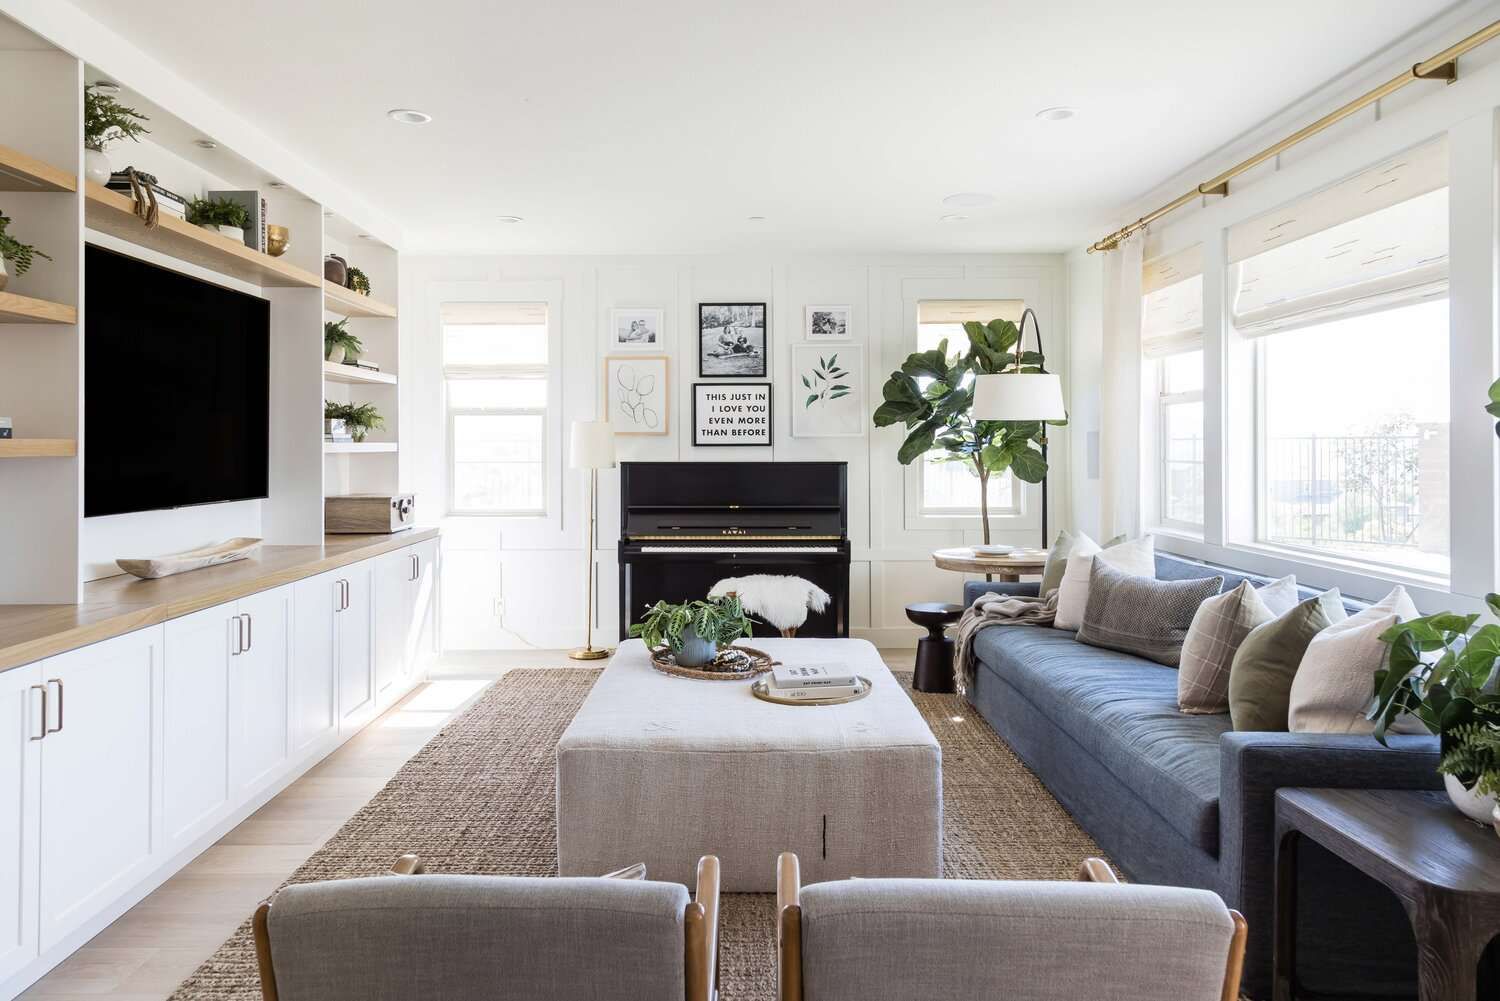 Bright living room with overhead and lamp lighting